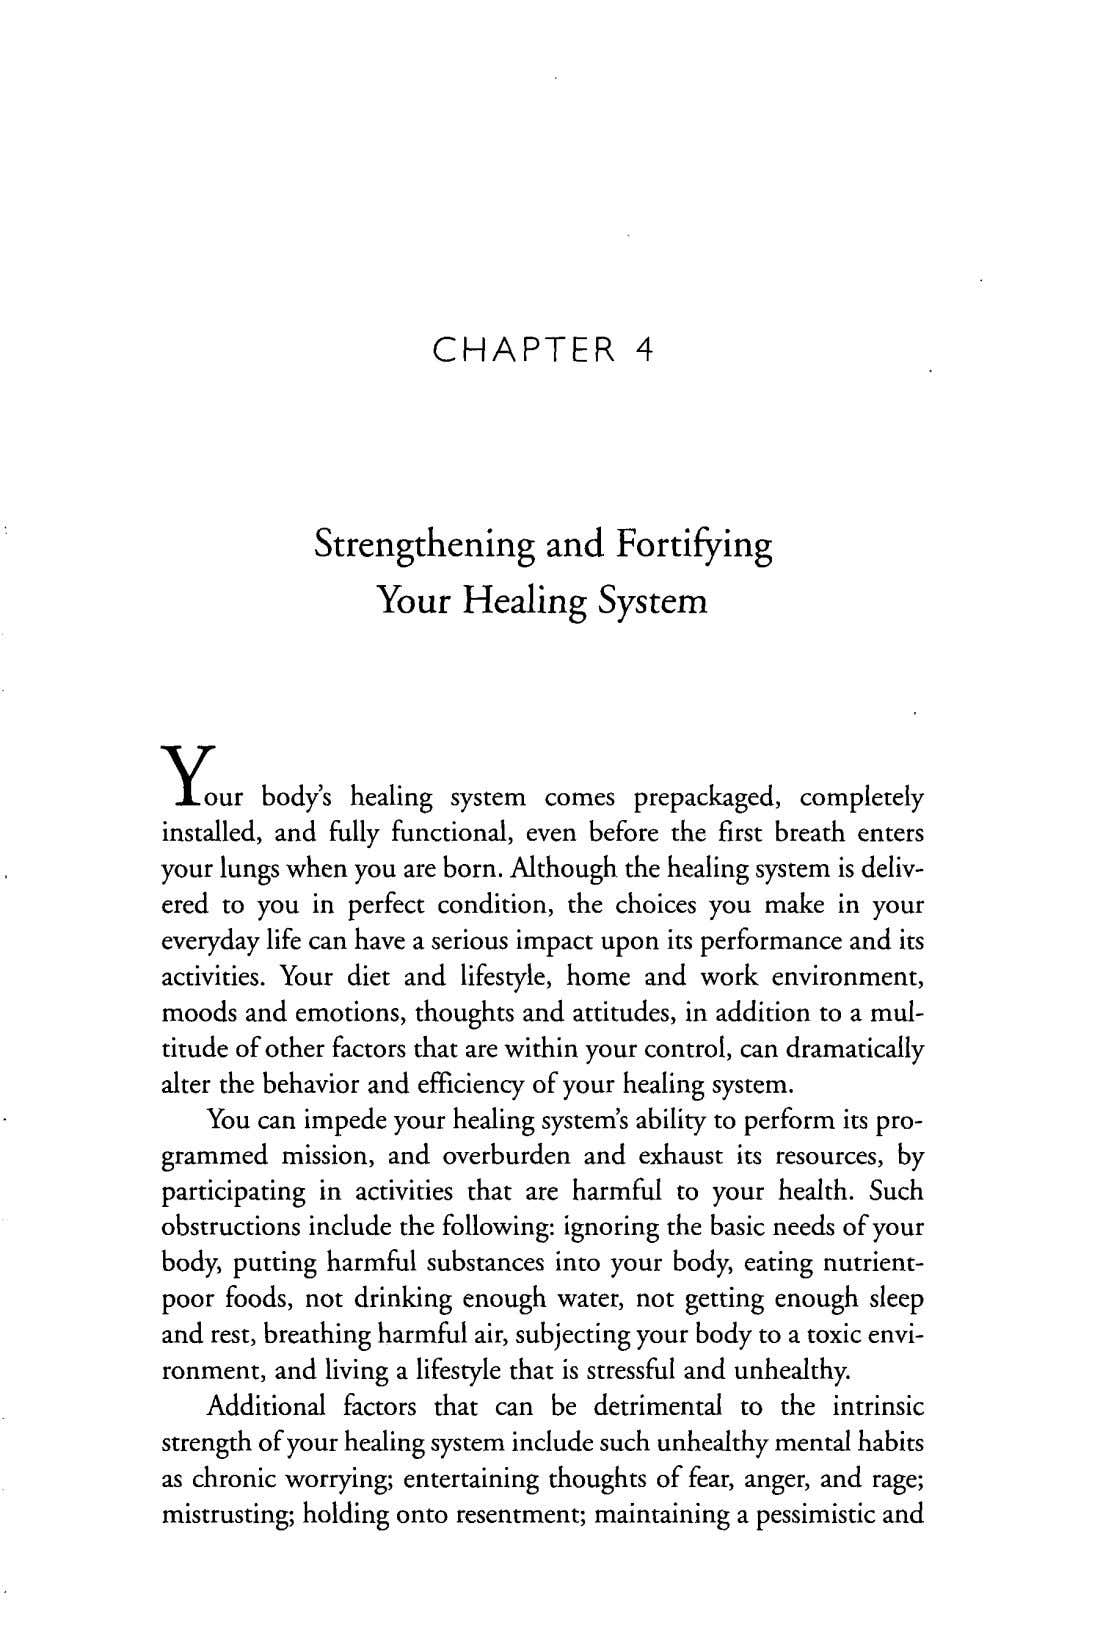 CHAPTER 4 Strengthening and Fortif~ring Your Healing System our body's healing system comes prepackaged, completely